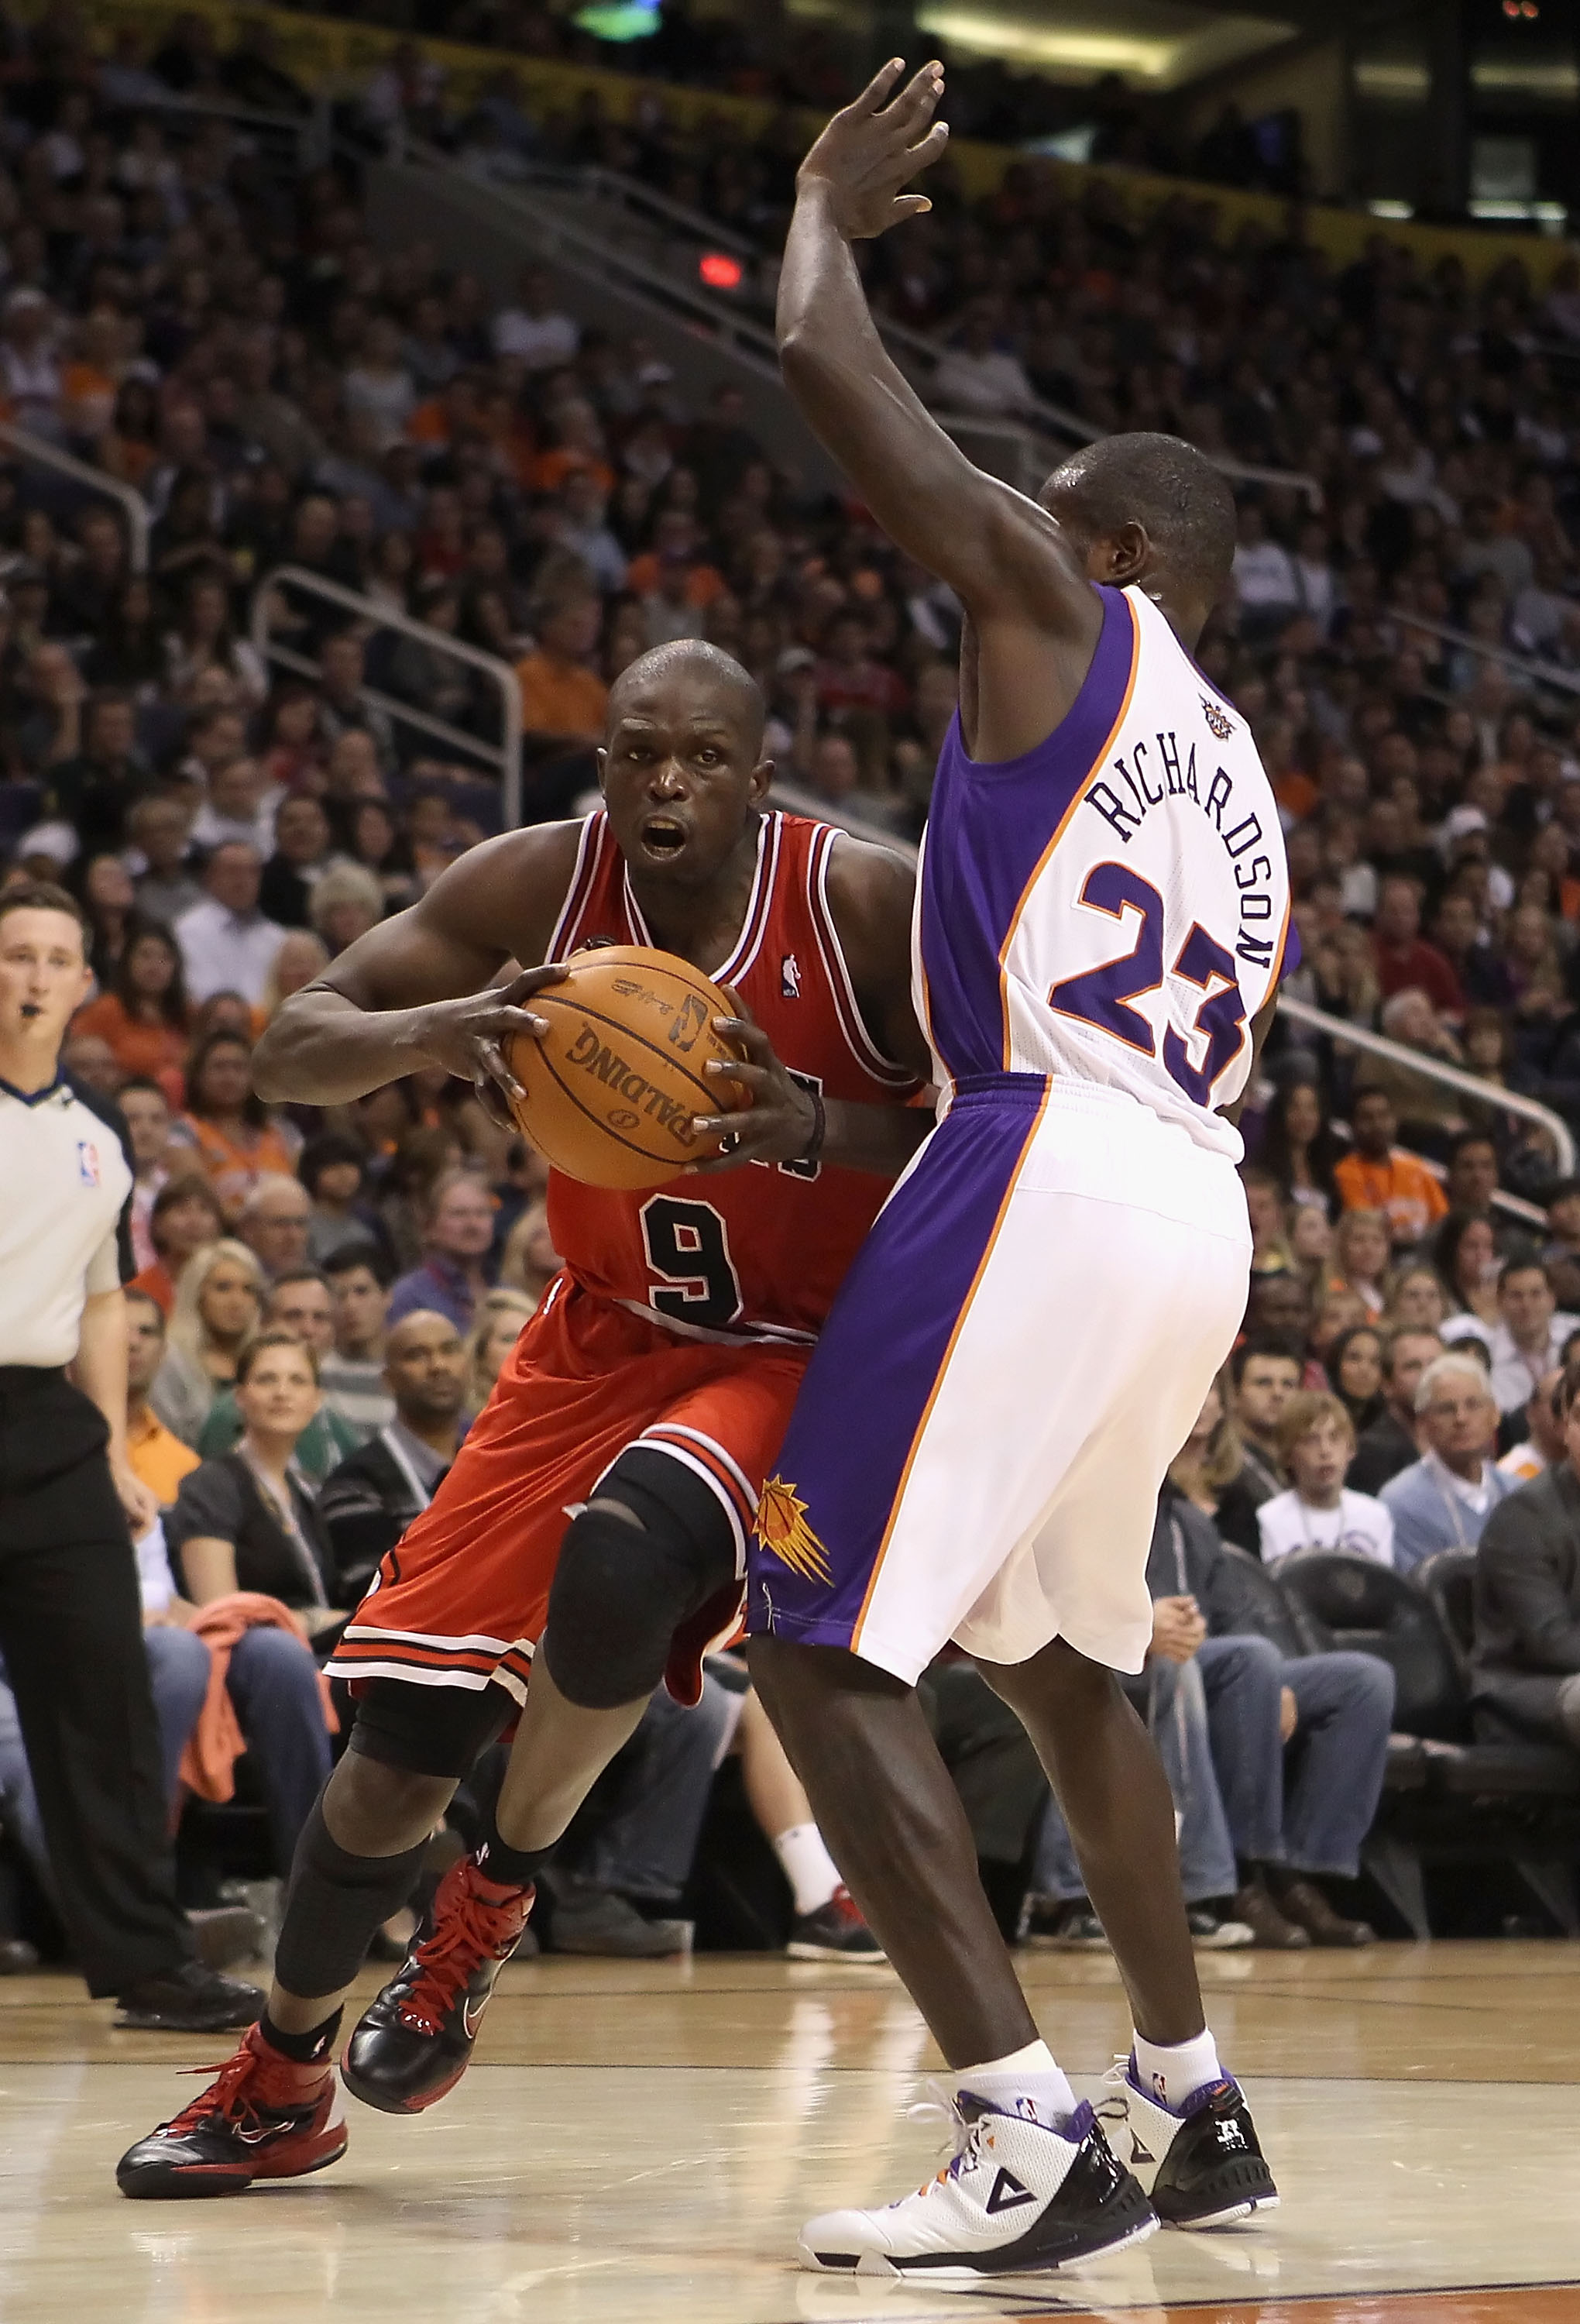 PHOENIX - NOVEMBER 24:  Luol Deng #9 of the Chicago Bulls drives to the basket during the NBA game against the Phoenix Suns at US Airways Center on November 24, 2010 in Phoenix, Arizona. The Bulls defeated the Suns 123-115 in double overtime.  NOTE TO USE